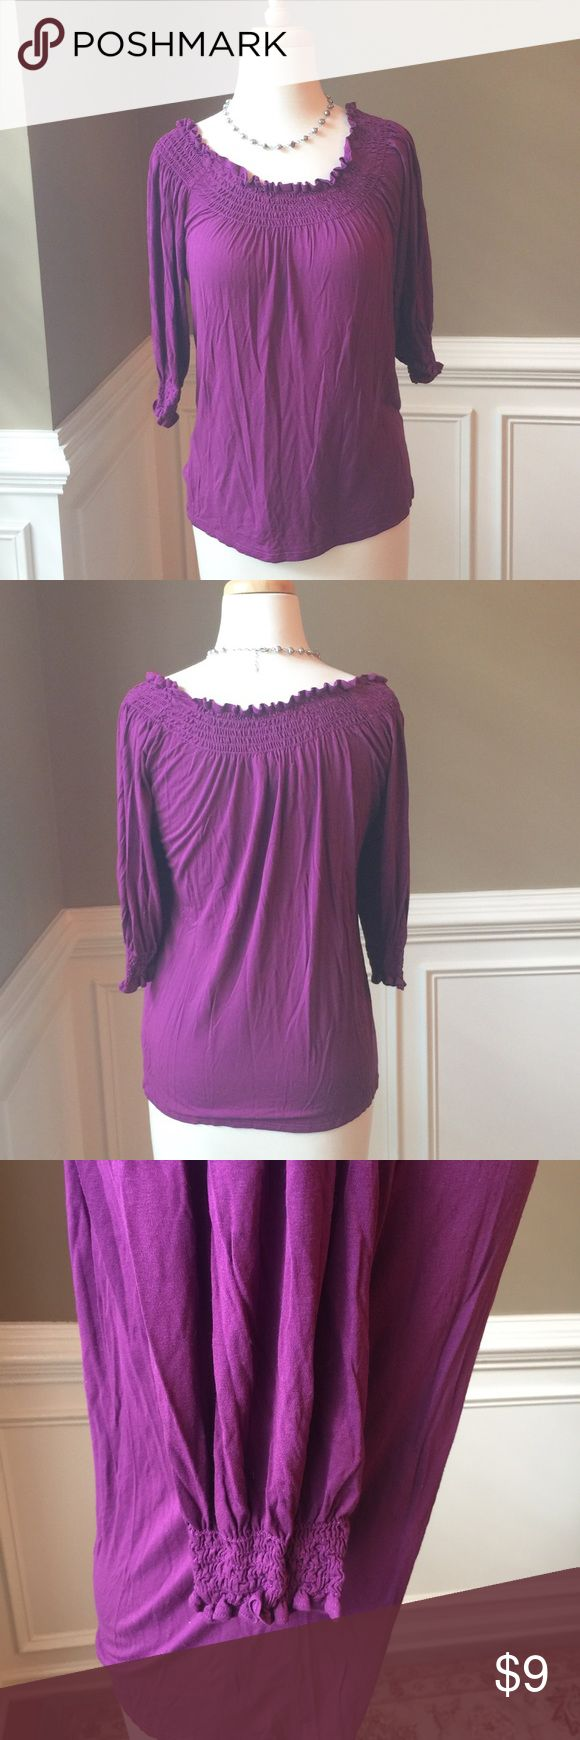 "🍂New🍂 Karen Kane purple top Pretty purple top from Karen Kane. Smocked and neckline and sleeve cuffs. Can be worn off shoulder. No rips, stains, odors. Just gentle wear. Smoke and pet free home. Approx 15"" across bust, 22.5"" long, 12"" sleeves. Rayon/spandex blend. Dry clean. Bundle/make offer! Karen Kane Tops Tees - Long Sleeve"